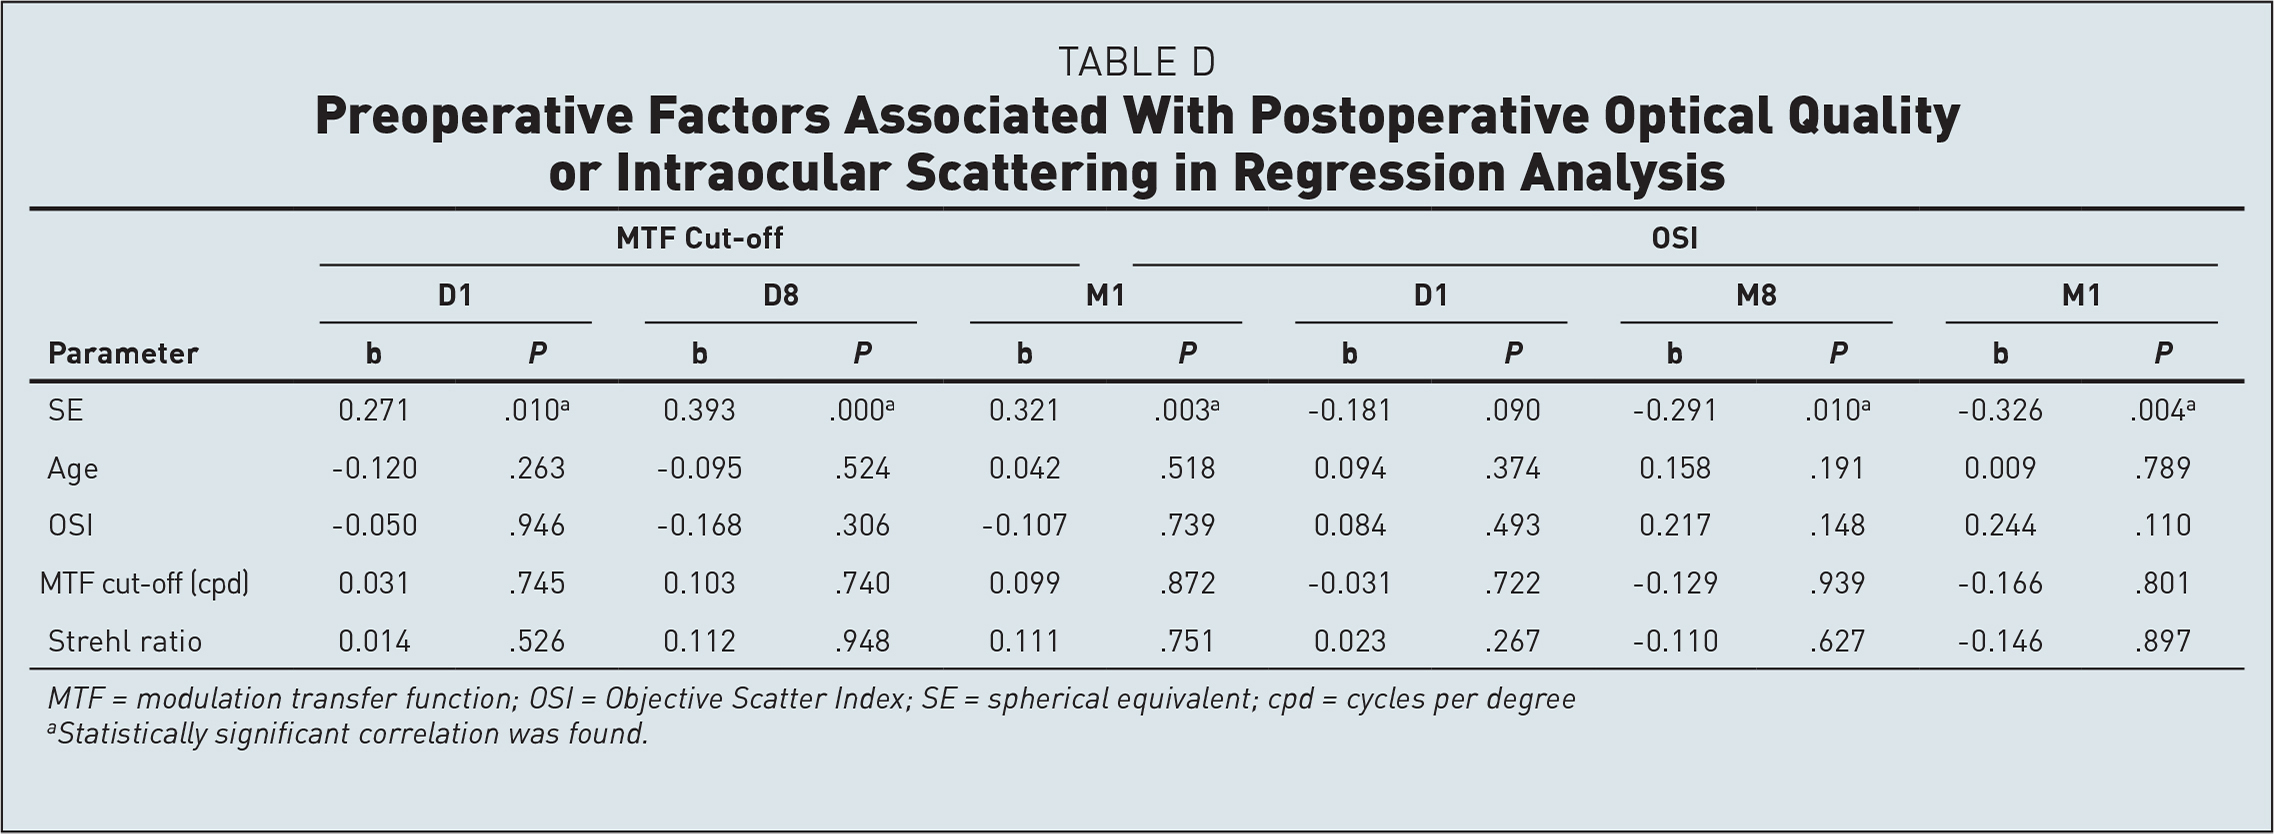 Preoperative Factors Associated With Postoperative Optical Quality or Intraocular Scattering in Regression Analysis